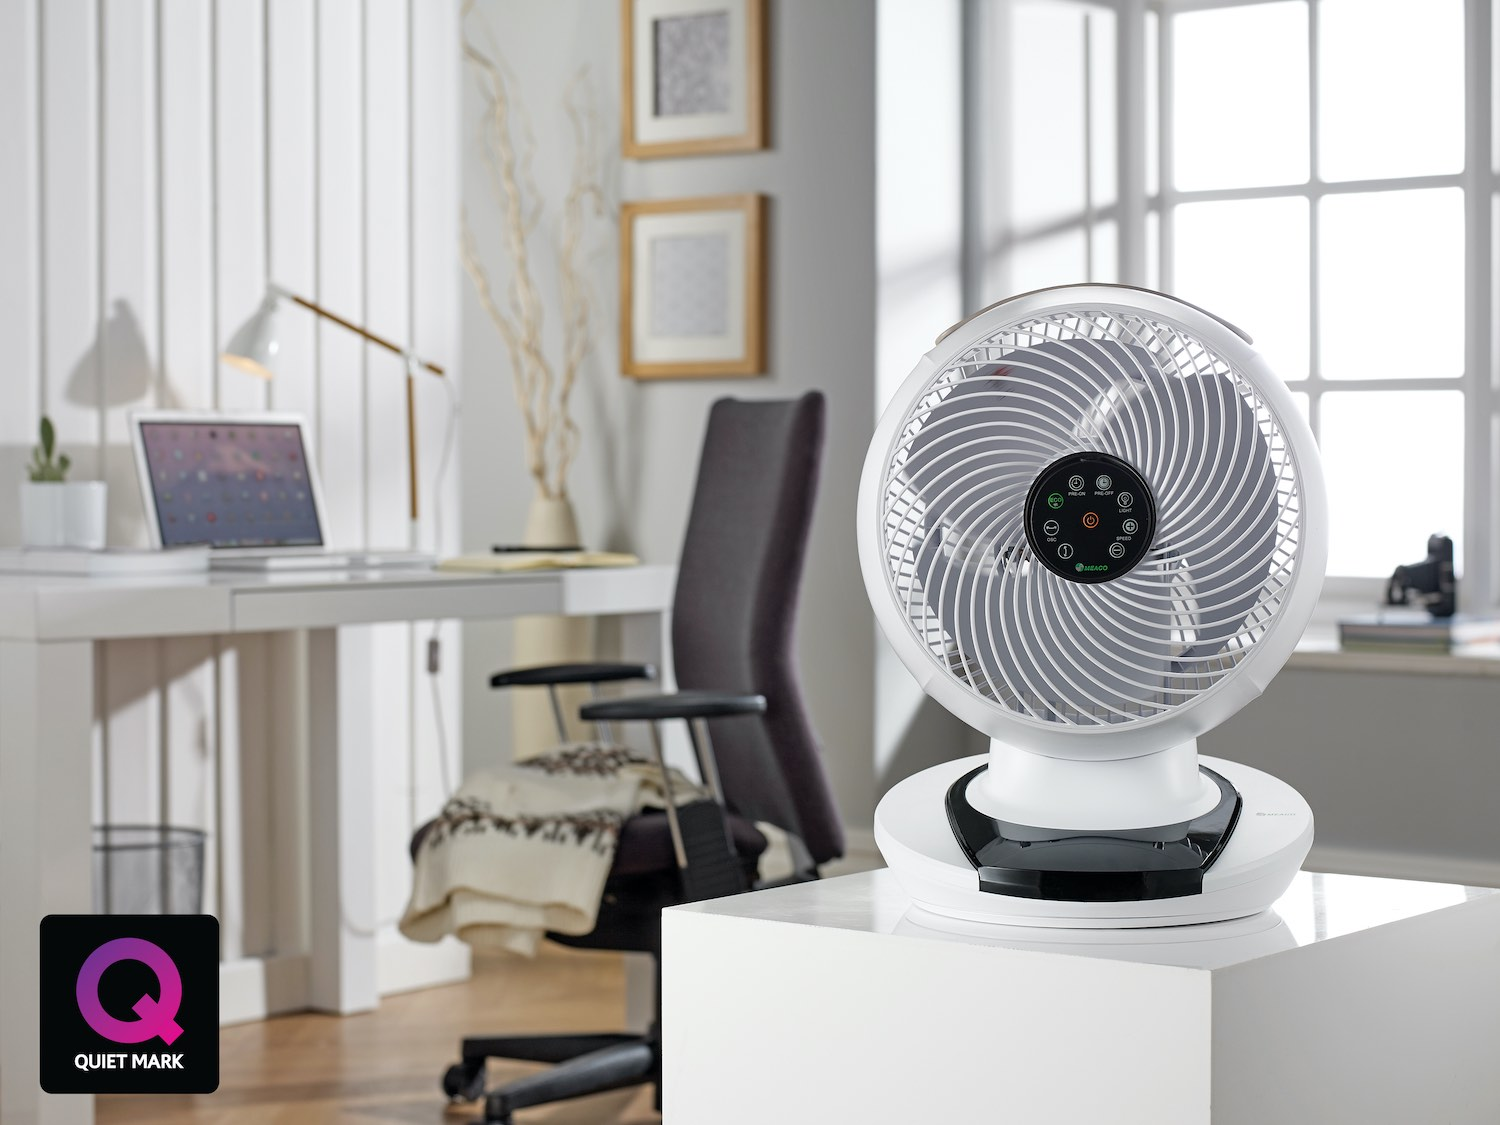 MeacoFan 1056 Air Circulator